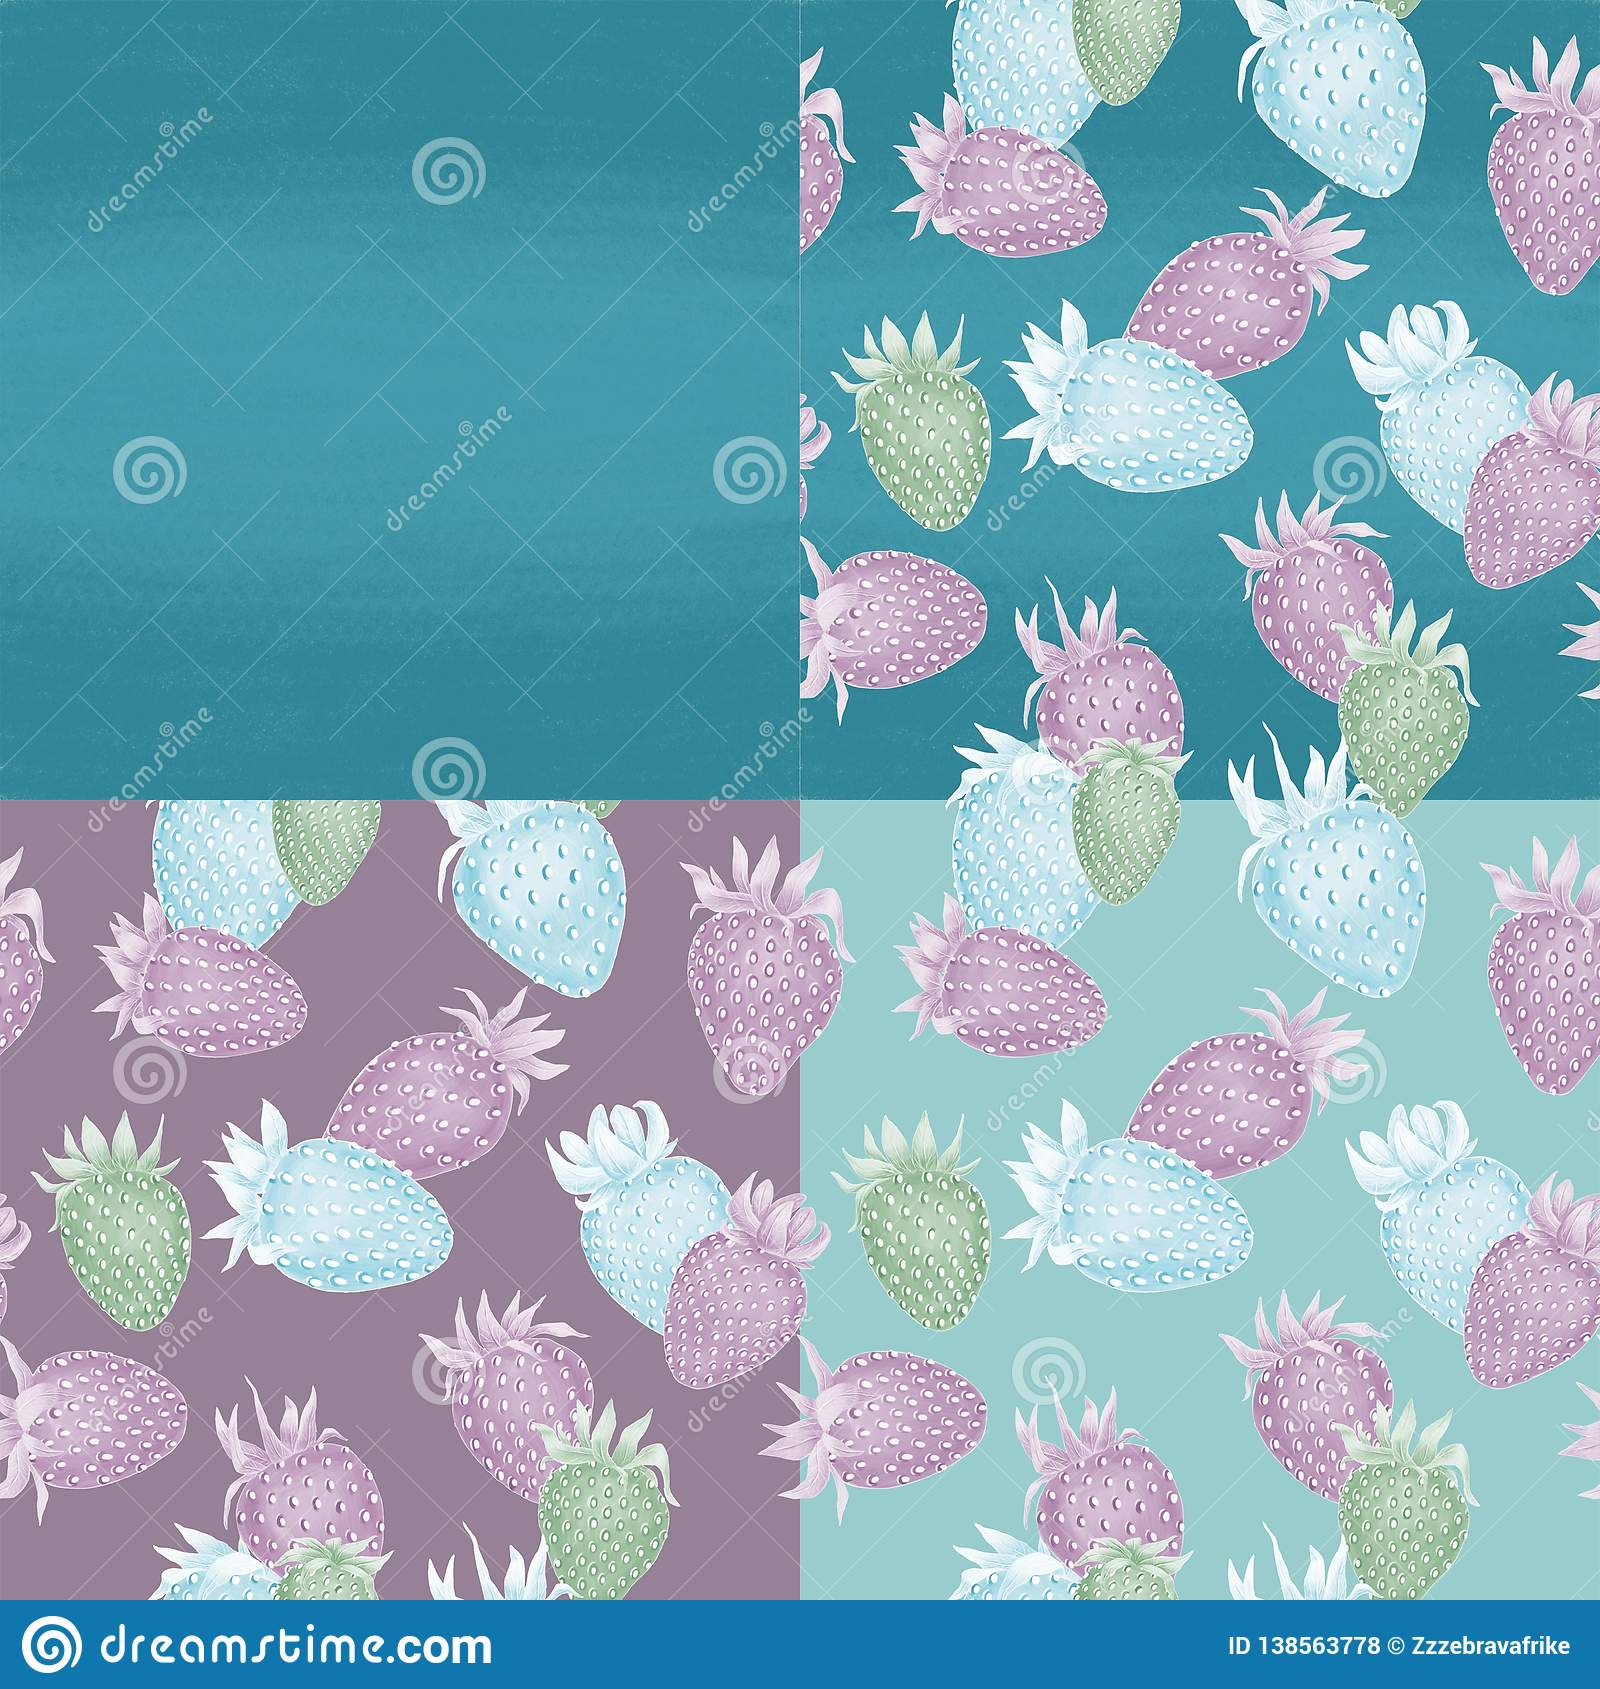 Strawberries on different dark blue backgrounds